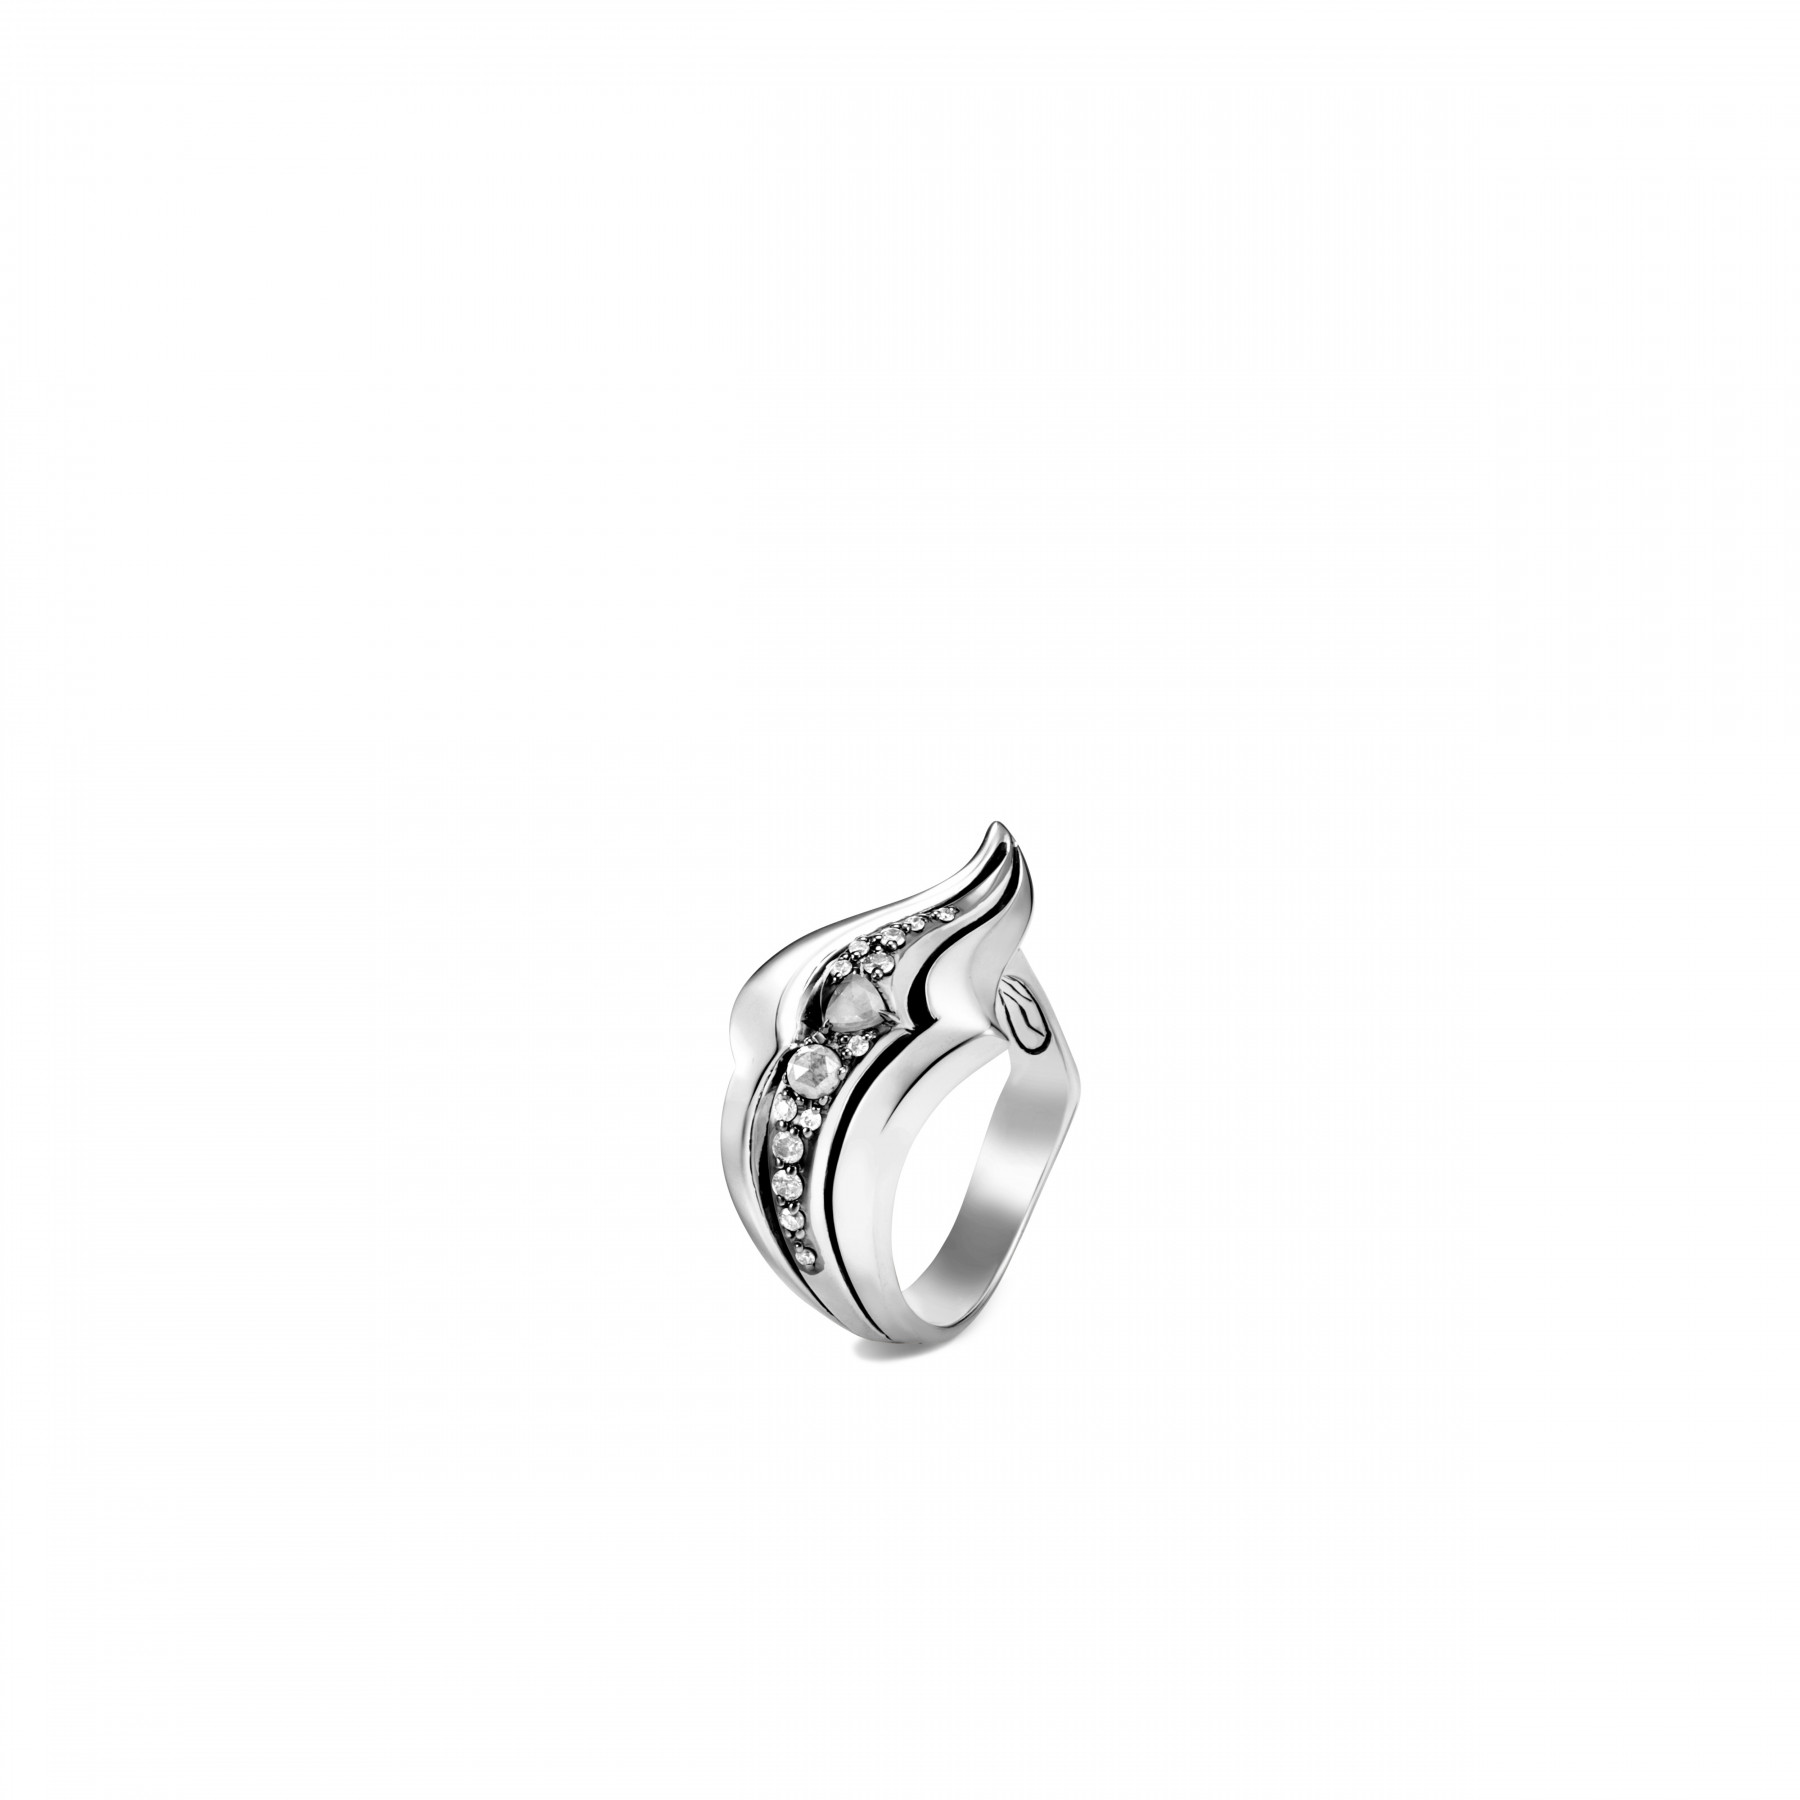 John Hardy Lahar White and Grey Diamond Curve Ring front view